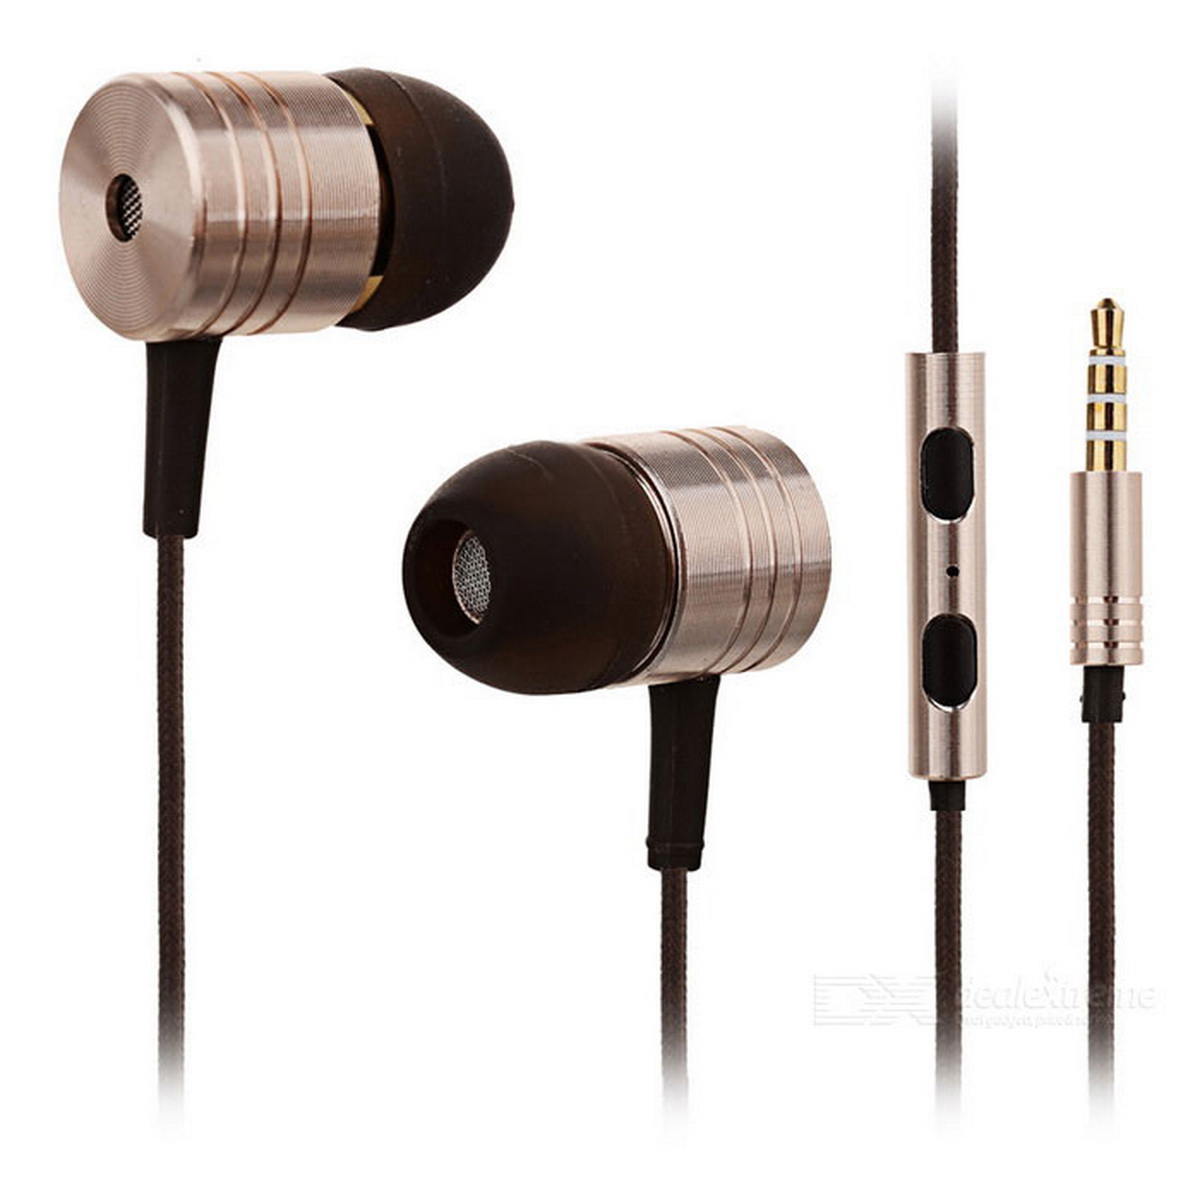 Super Bass Stereo In-ear 3.5mm Headset Earphone Headphone For iPhone/Samsung/MP3